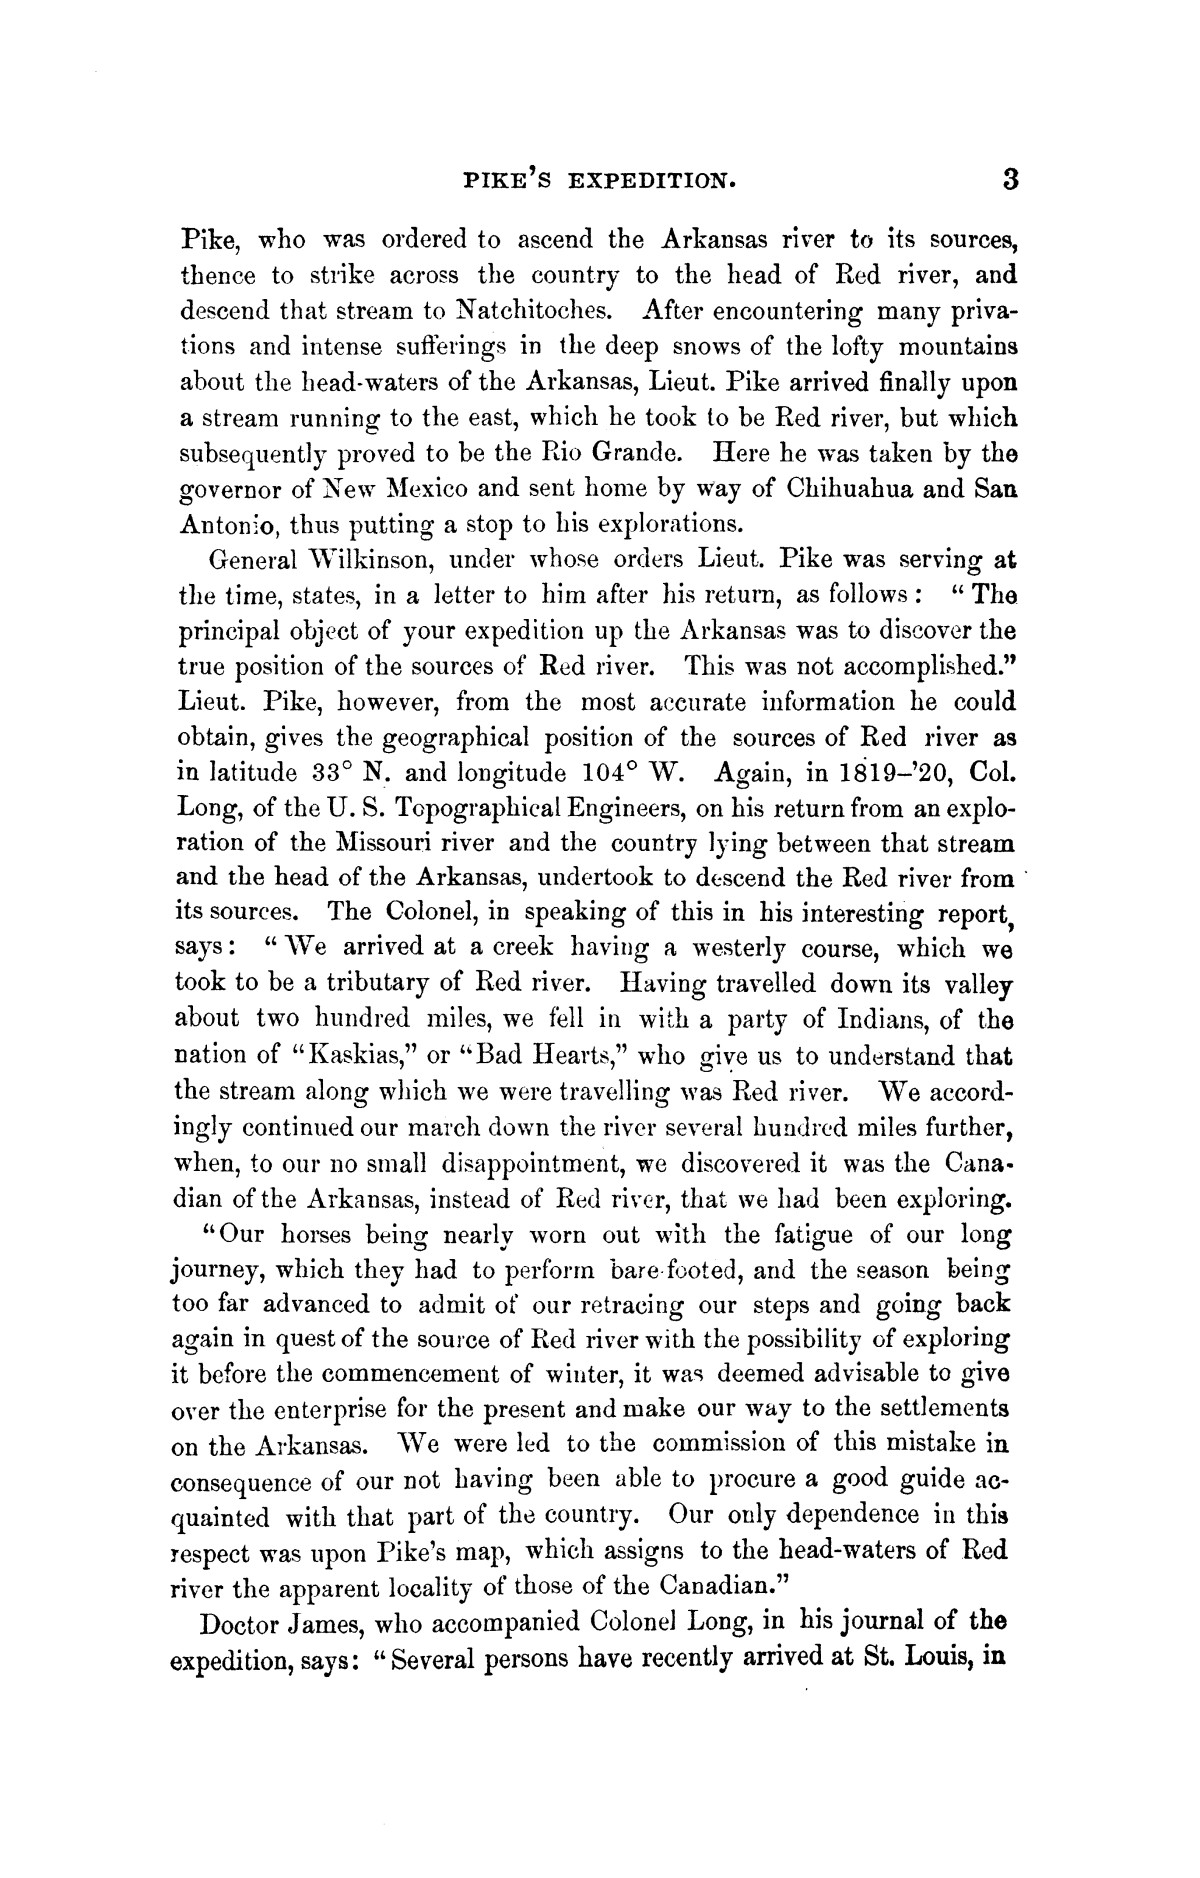 Exploration of the Red River of Louisiana, in the year 1852 / by Randolph B. Marcy ; assisted by George B. McClellan.                                                                                                      [Sequence #]: 19 of 368